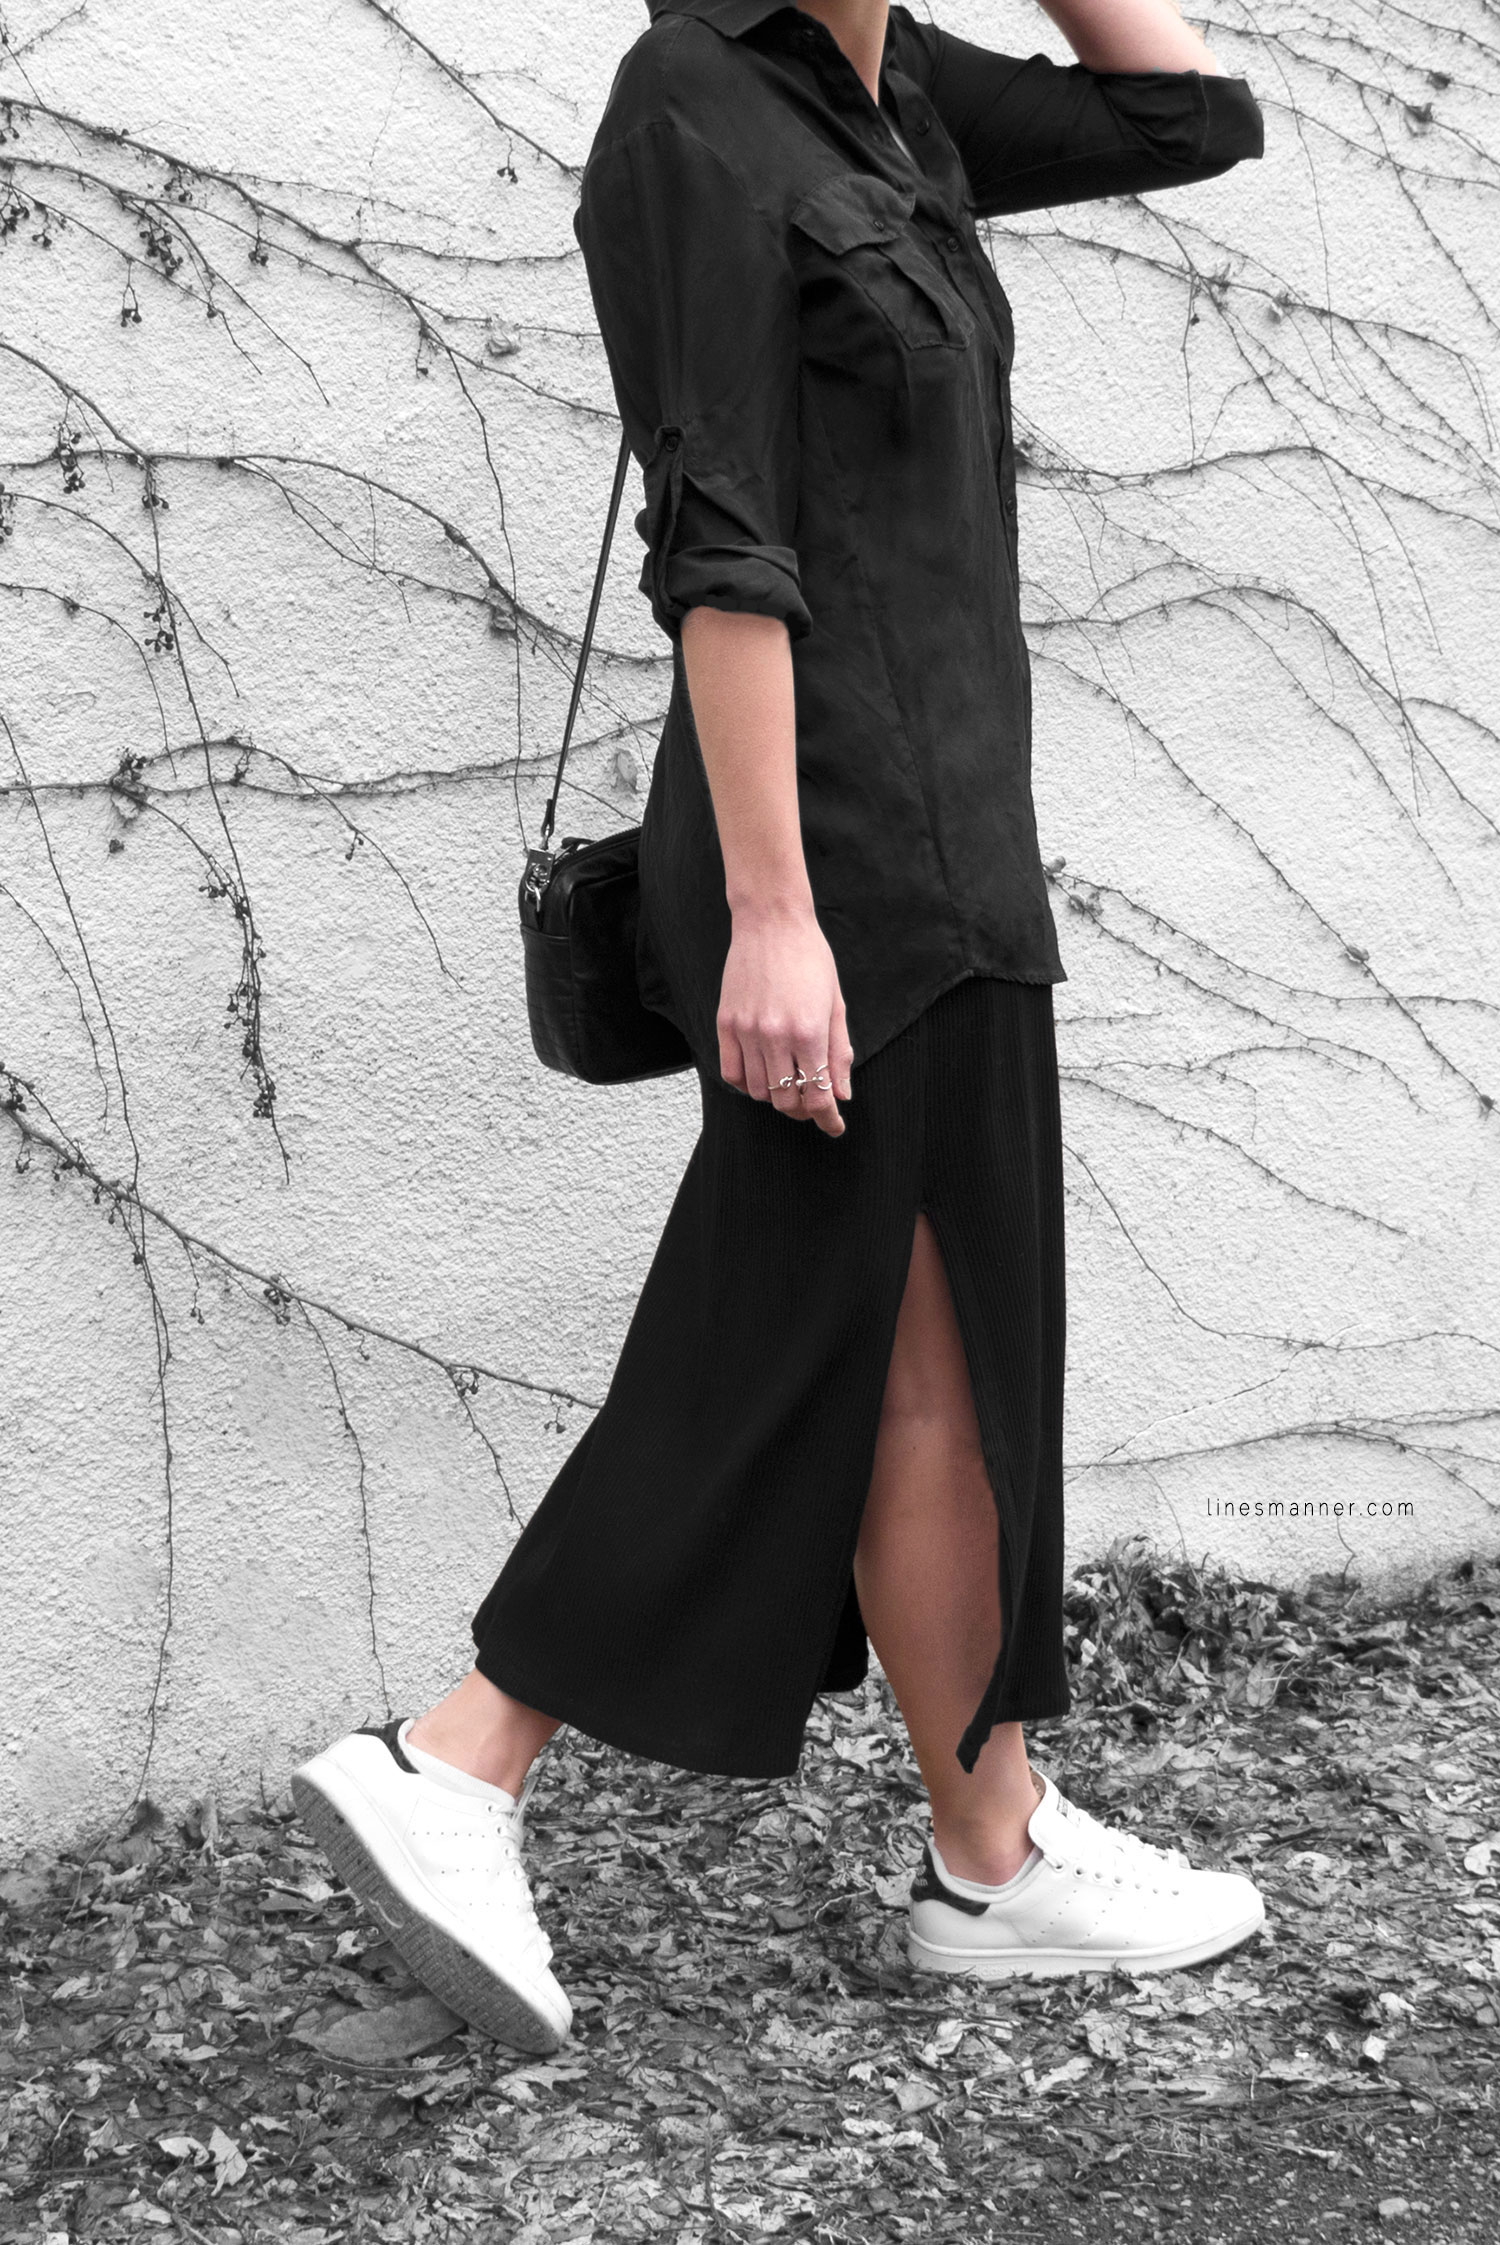 All_black_everything-monochrome-essentials-oversize-fit-textures-minimal-details-basics-staples-layering-feminine-masculine-4